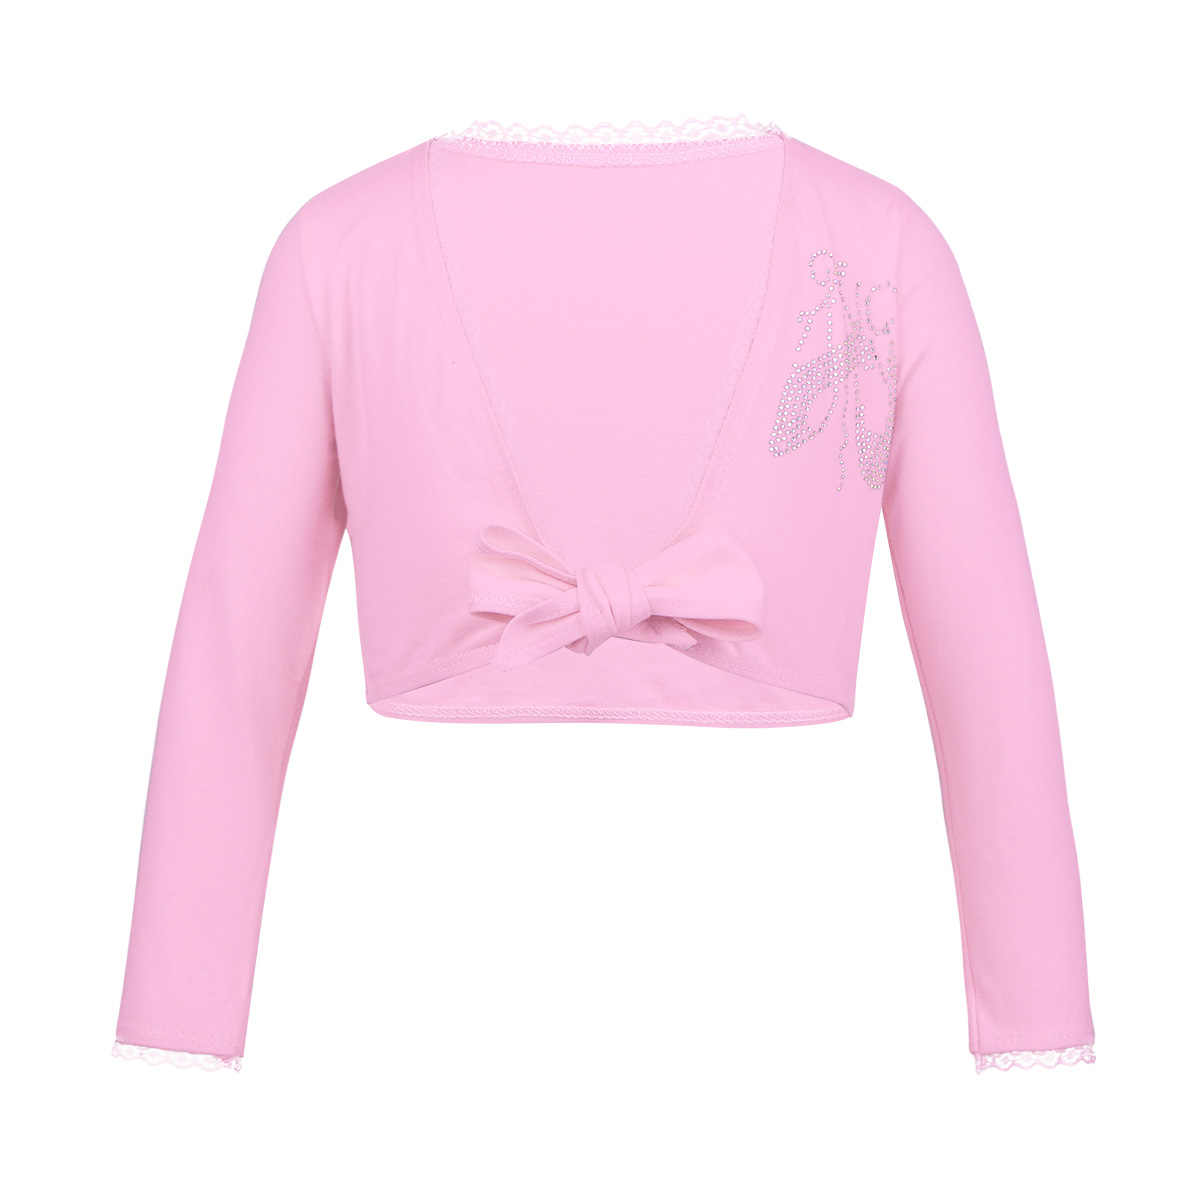 bb48c0f6ff0 Detail Feedback Questions about Girls Knotted Lace edge Ballet Wrap Top Girl  Long Sleeve Ballerina Leotard Cardigan Crop Tops Kids Dance Coat Shawl  Cardigan ...